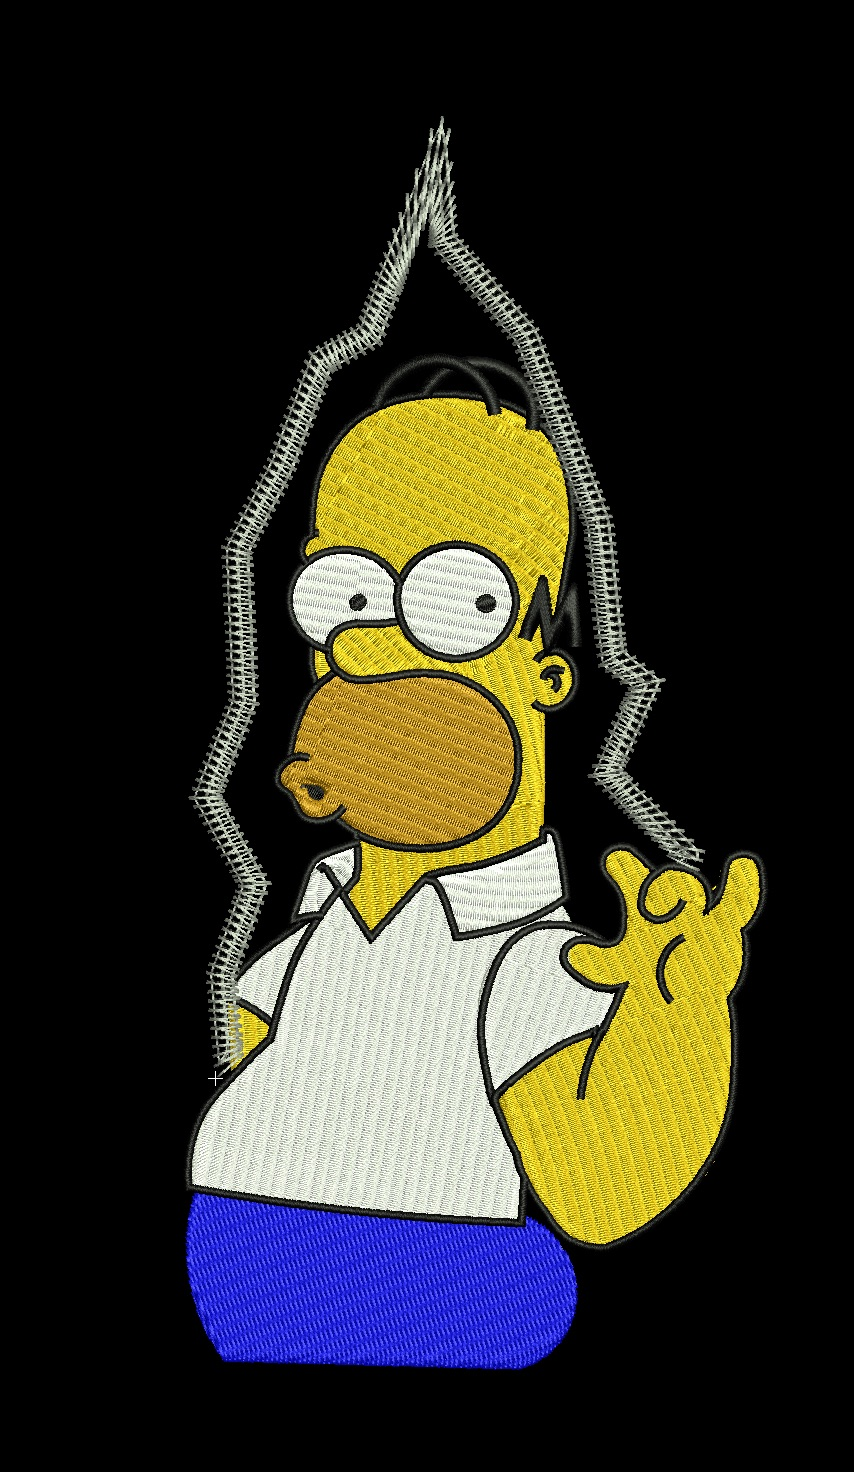 homer simpson the Simpsons logo embroidered clothing   T-shirts, polos, hoodies, fleeces, jackets, hats, & badges,  embroidery machine designs